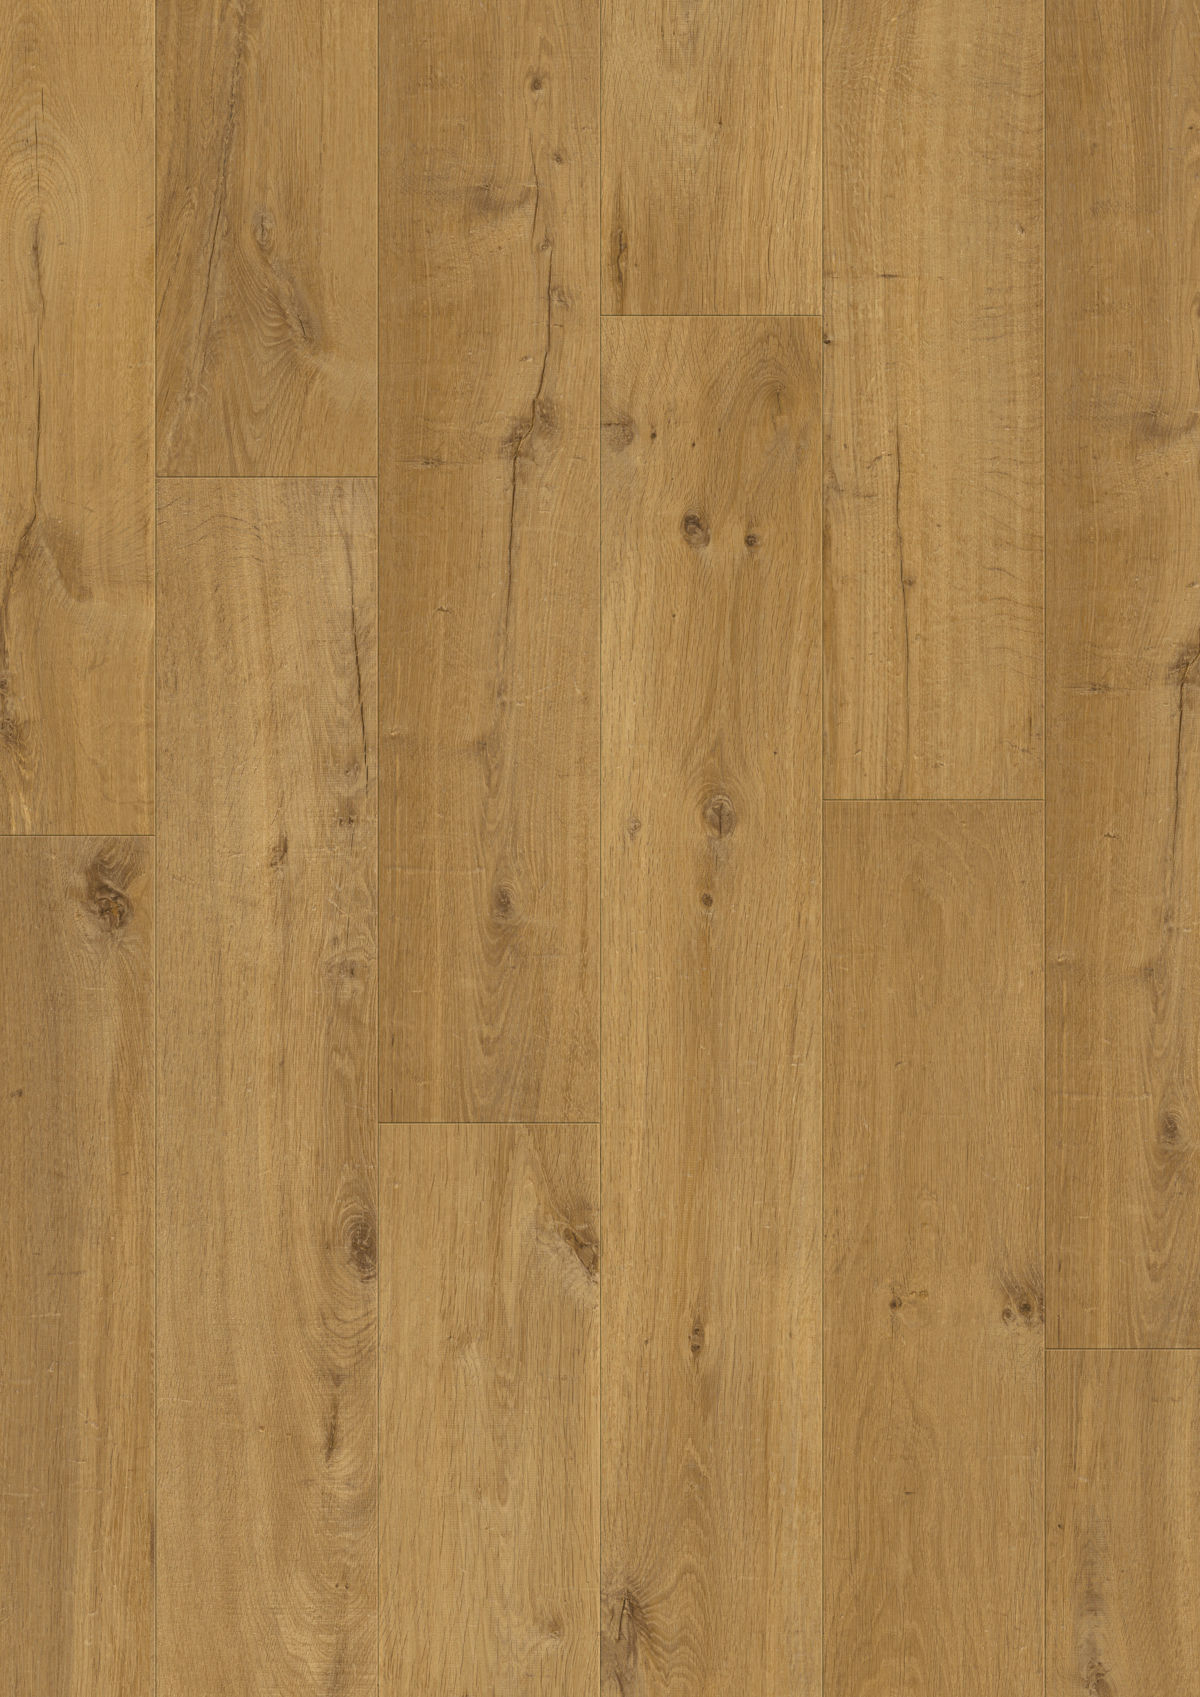 flooring oak p vintage thick outlast mm floors length wood case laminate ft pergo in x wide pewter sq